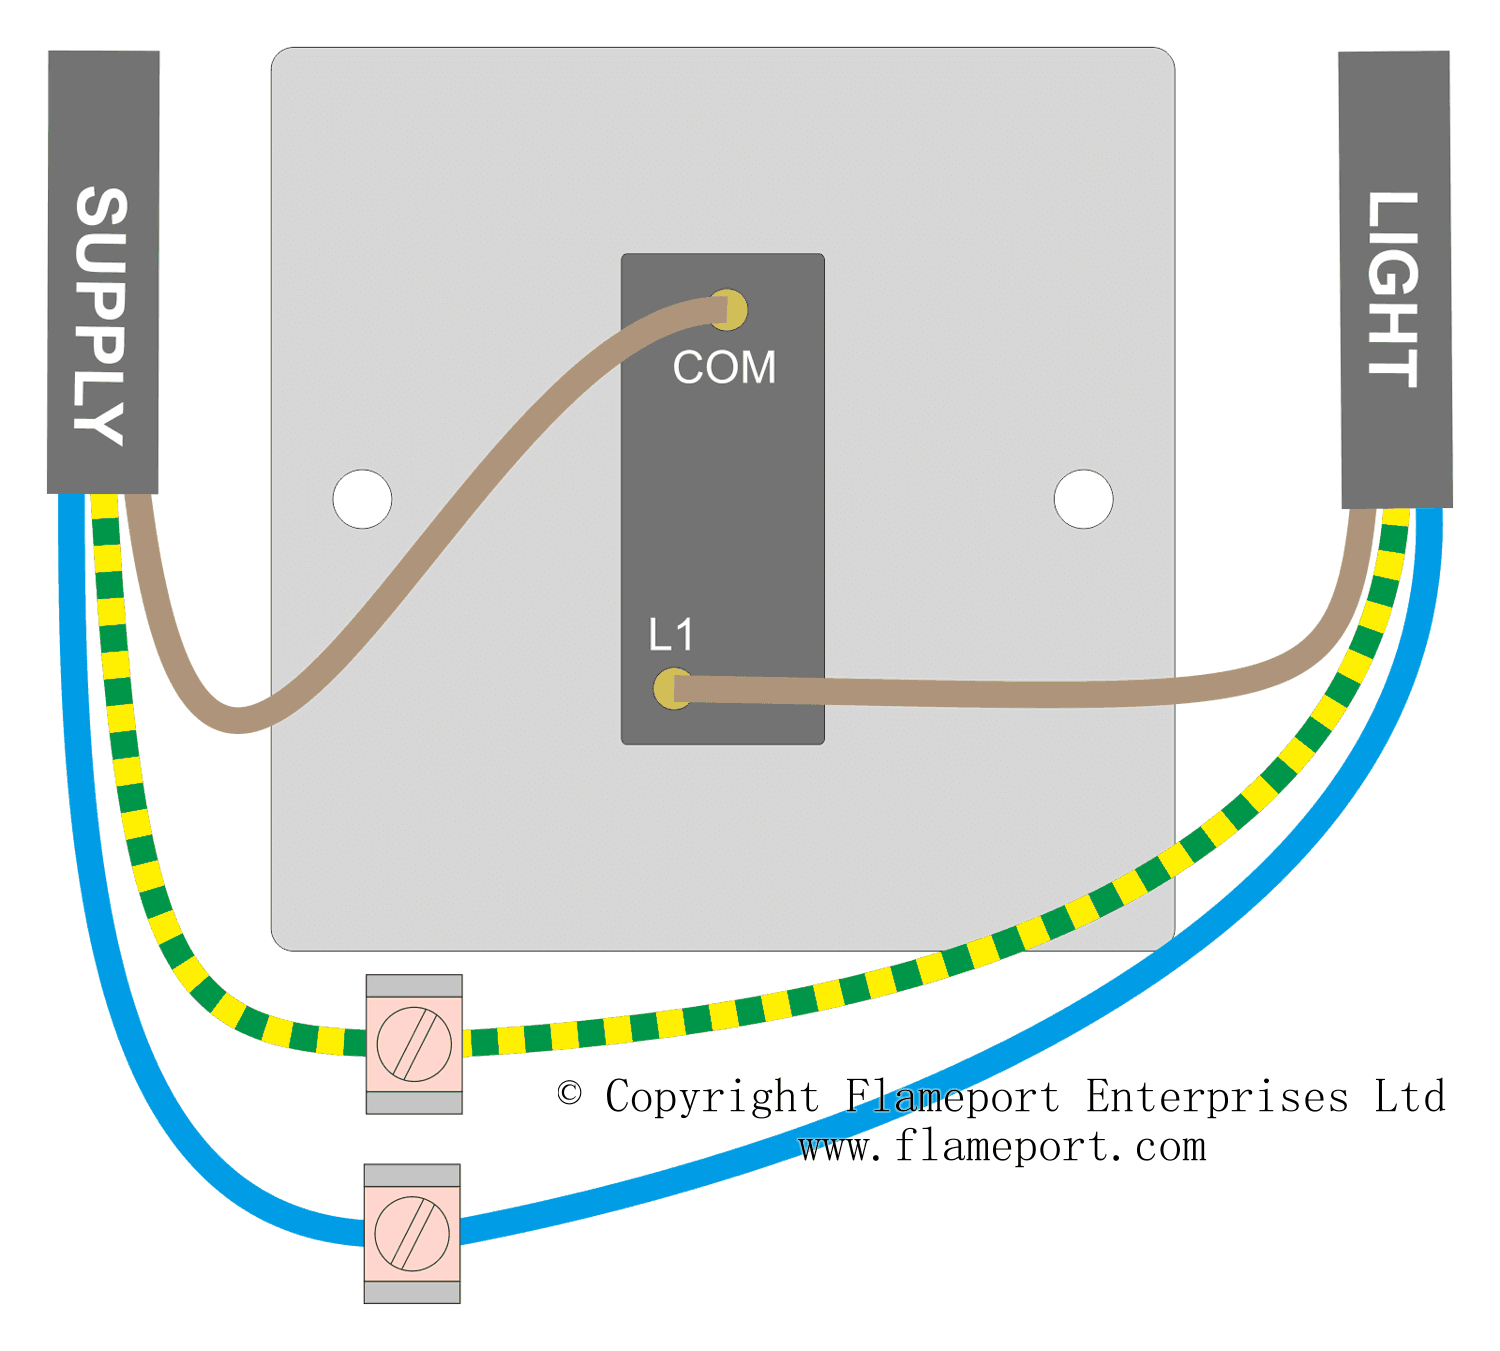 Wiring For A Single Loft Or Garage Light - Wiring Diagram Light Switch